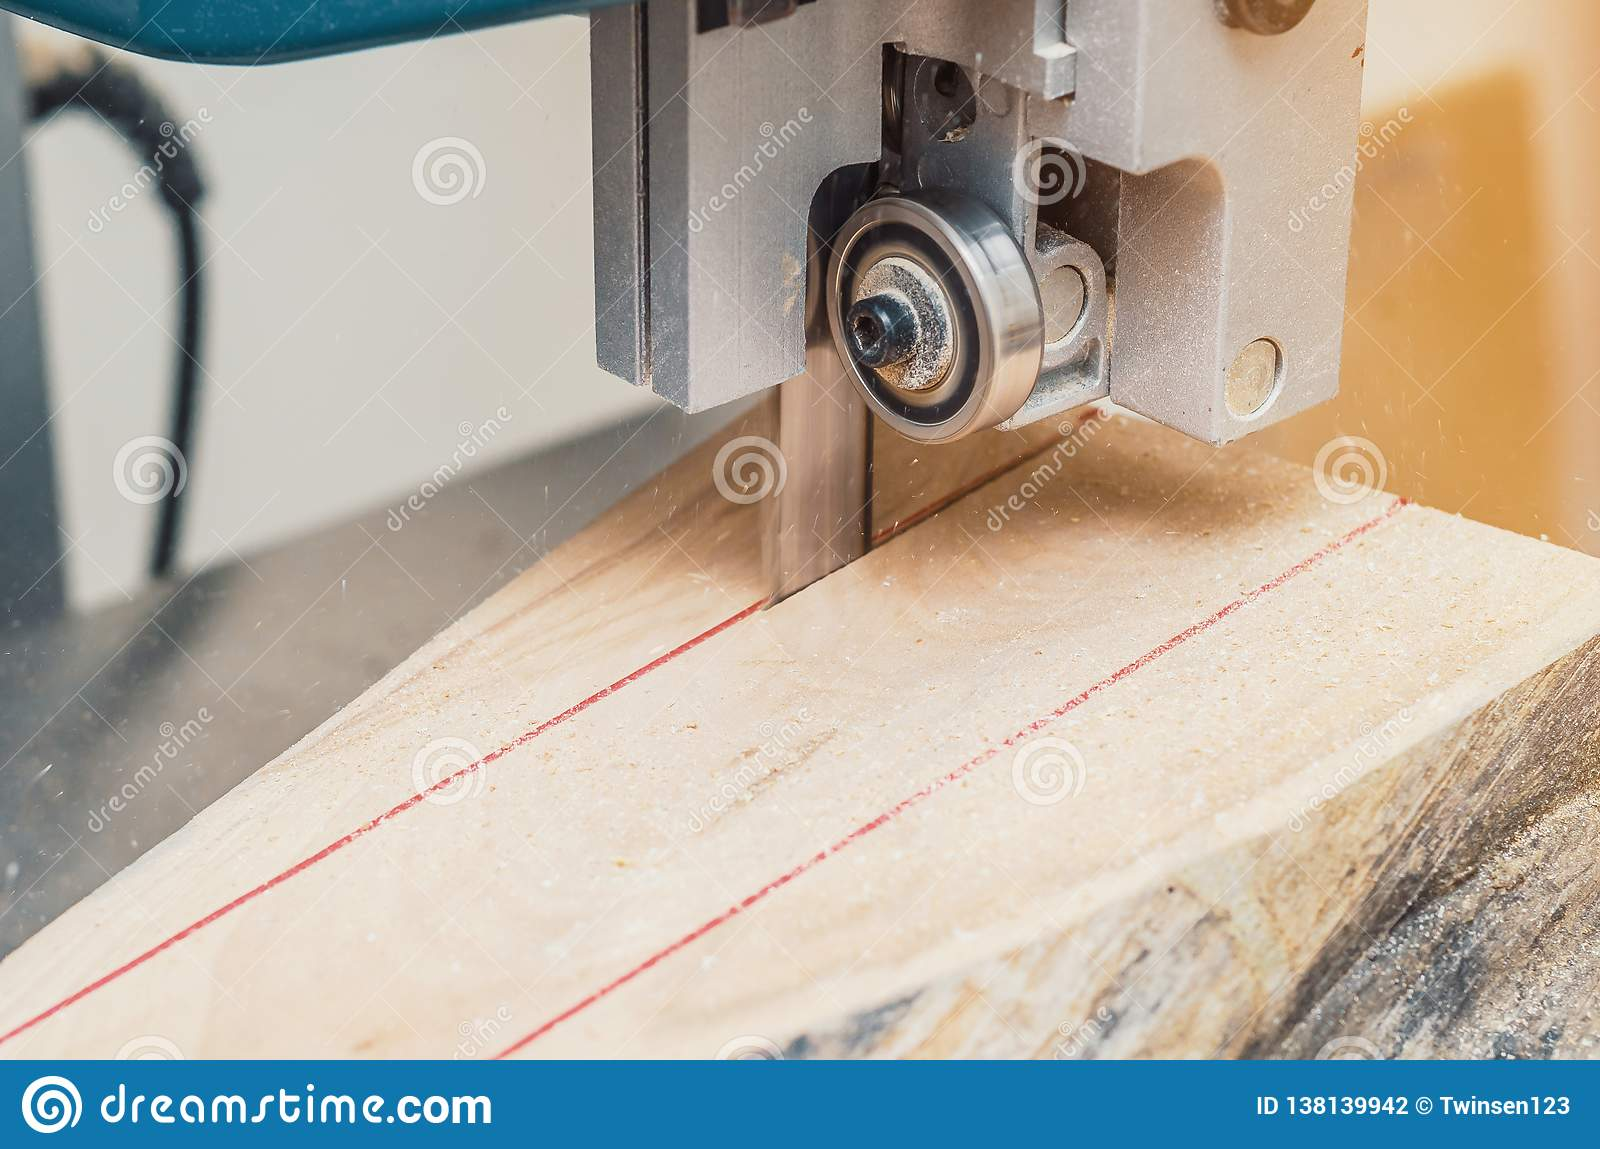 band saw, the machine cuts the log on the boards